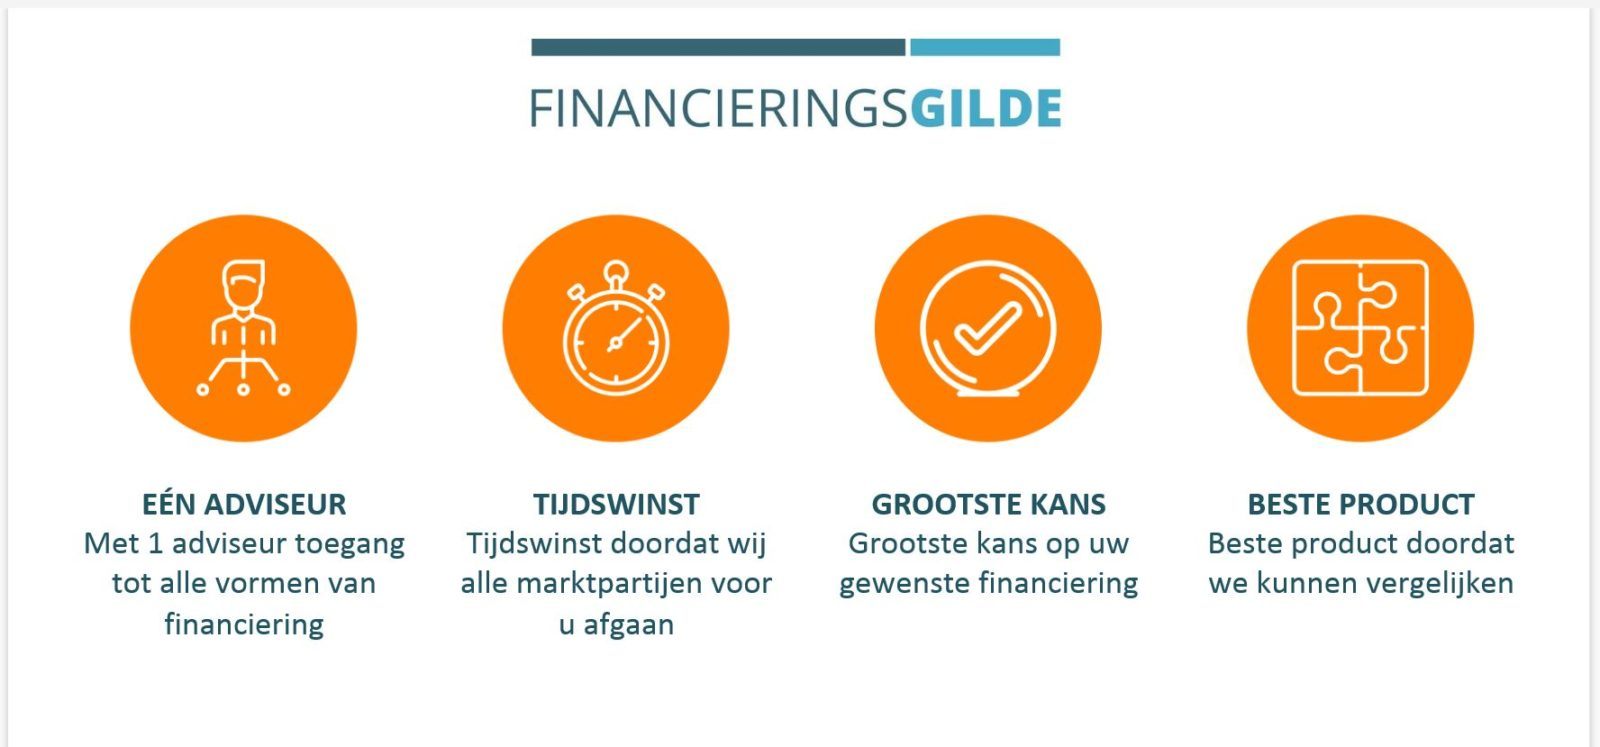 Financierinsgilde